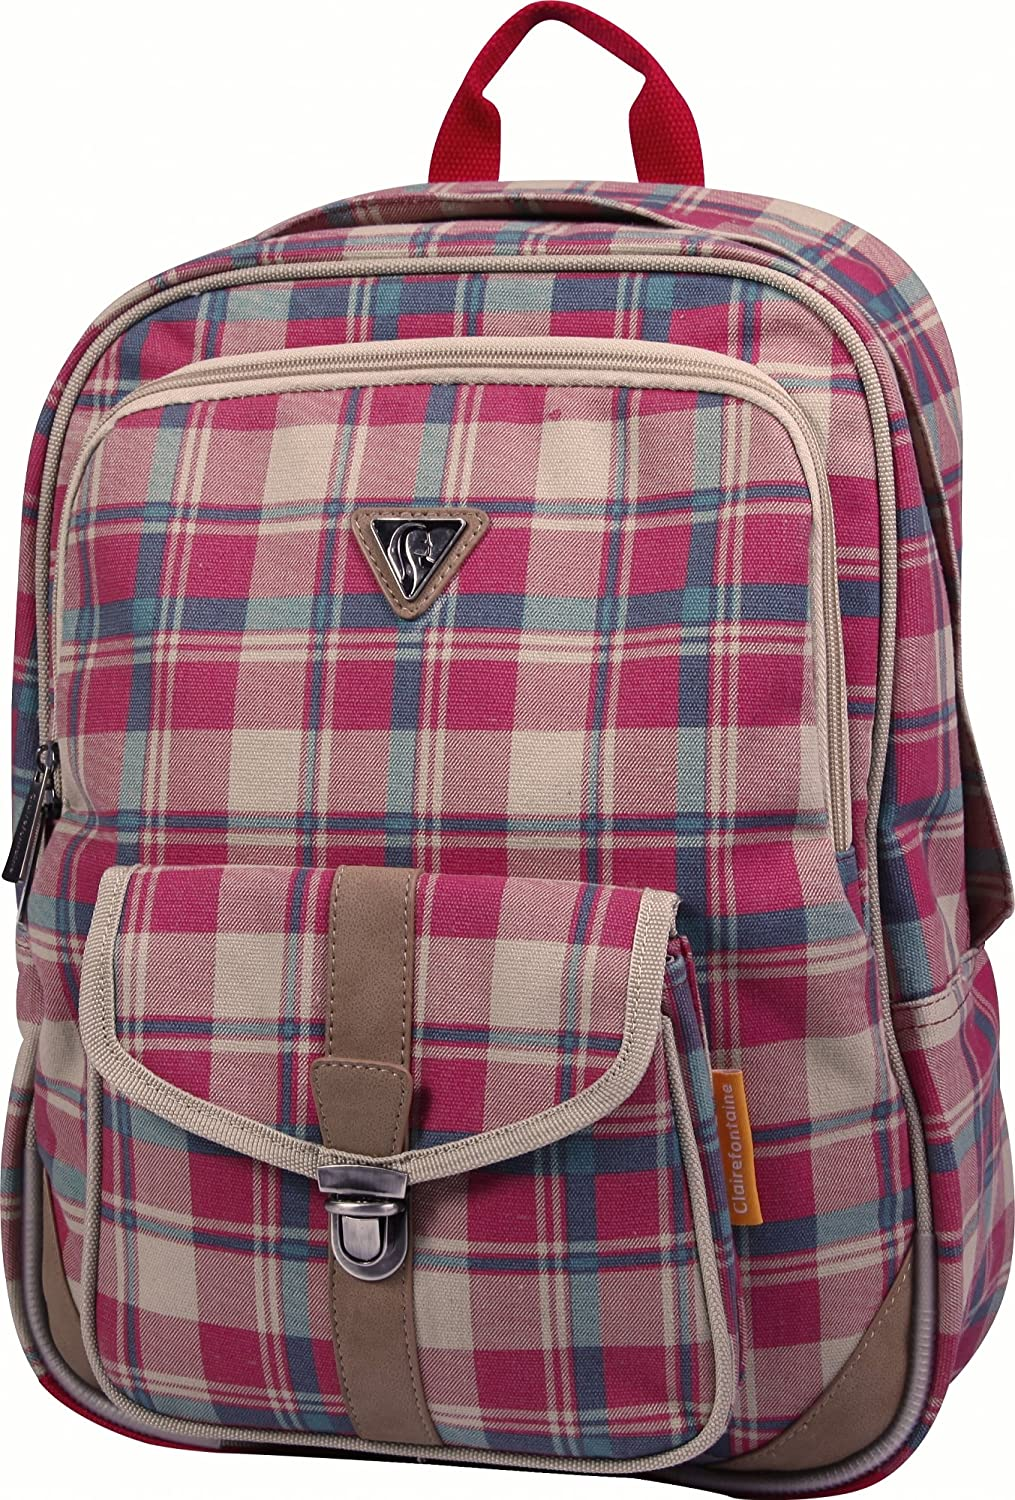 Clairefontaine Classic Bag 8014C Sac à dos 2 compartiments + 1 poche 100% coton/finition simili cuir Bleu Gd4F03u